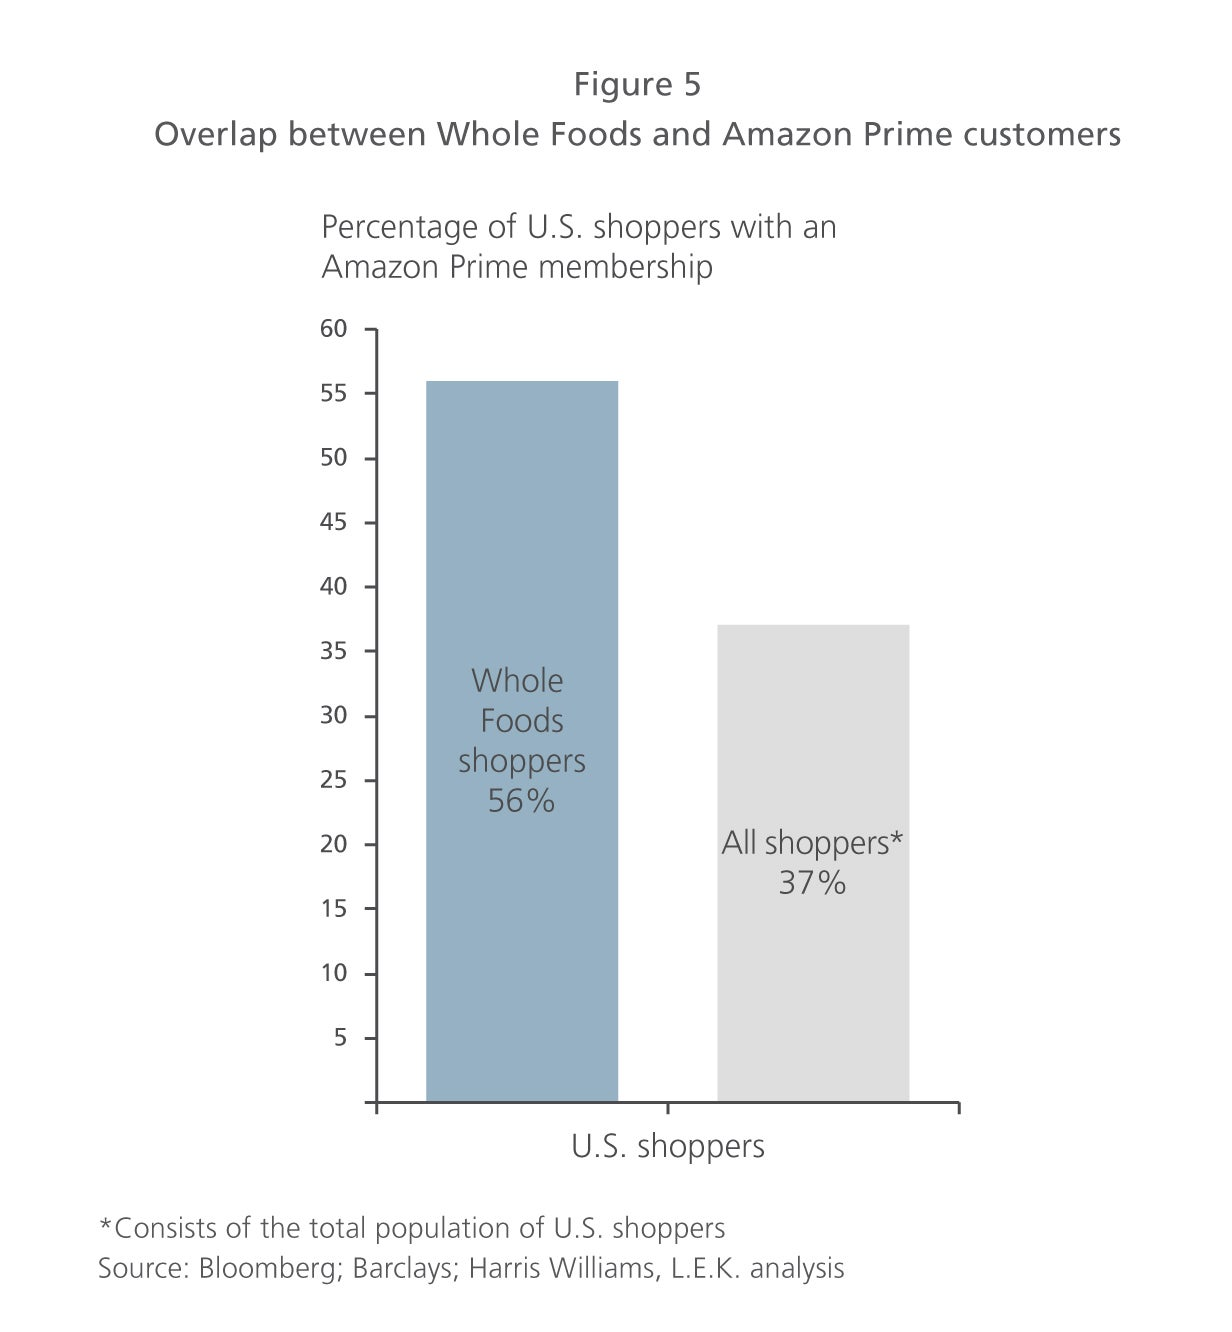 Whole Foods and Amazon Prime customers overlap